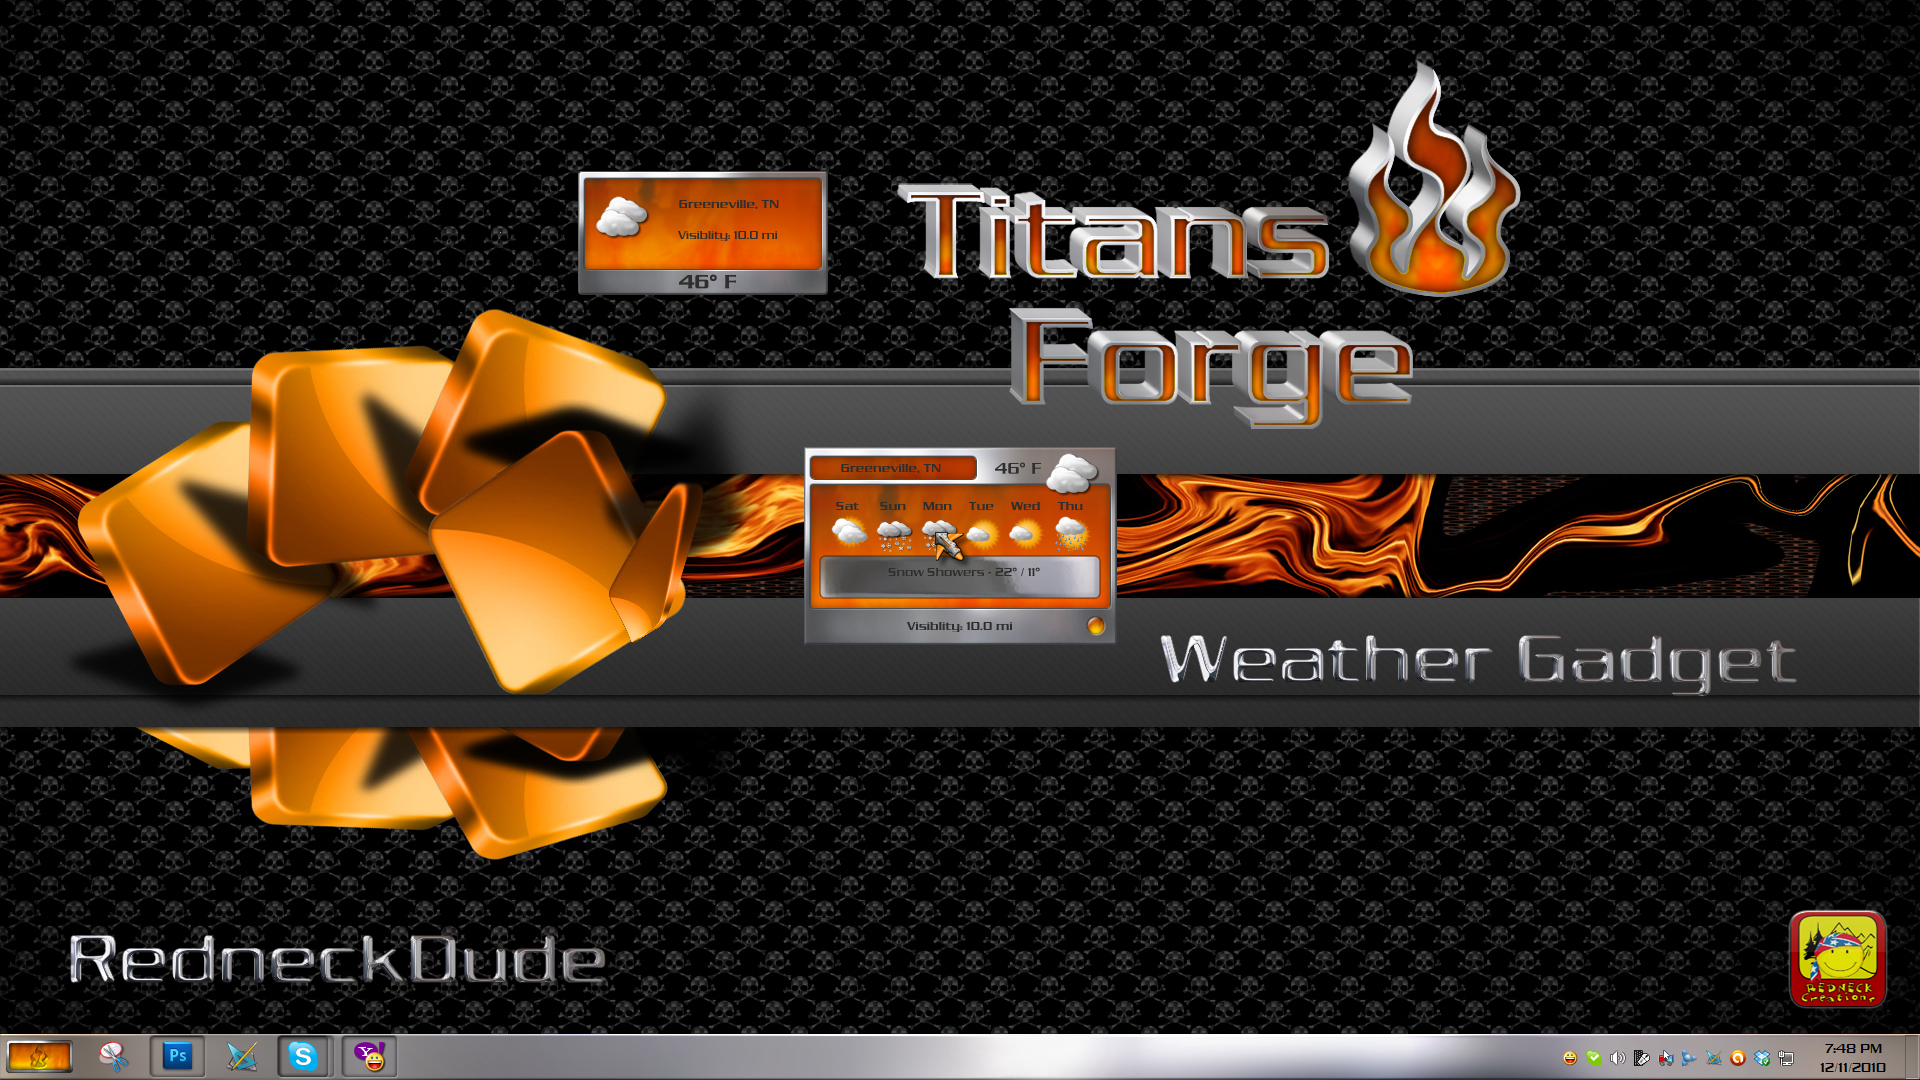 Titan&#39;s Forge Weather Gadget